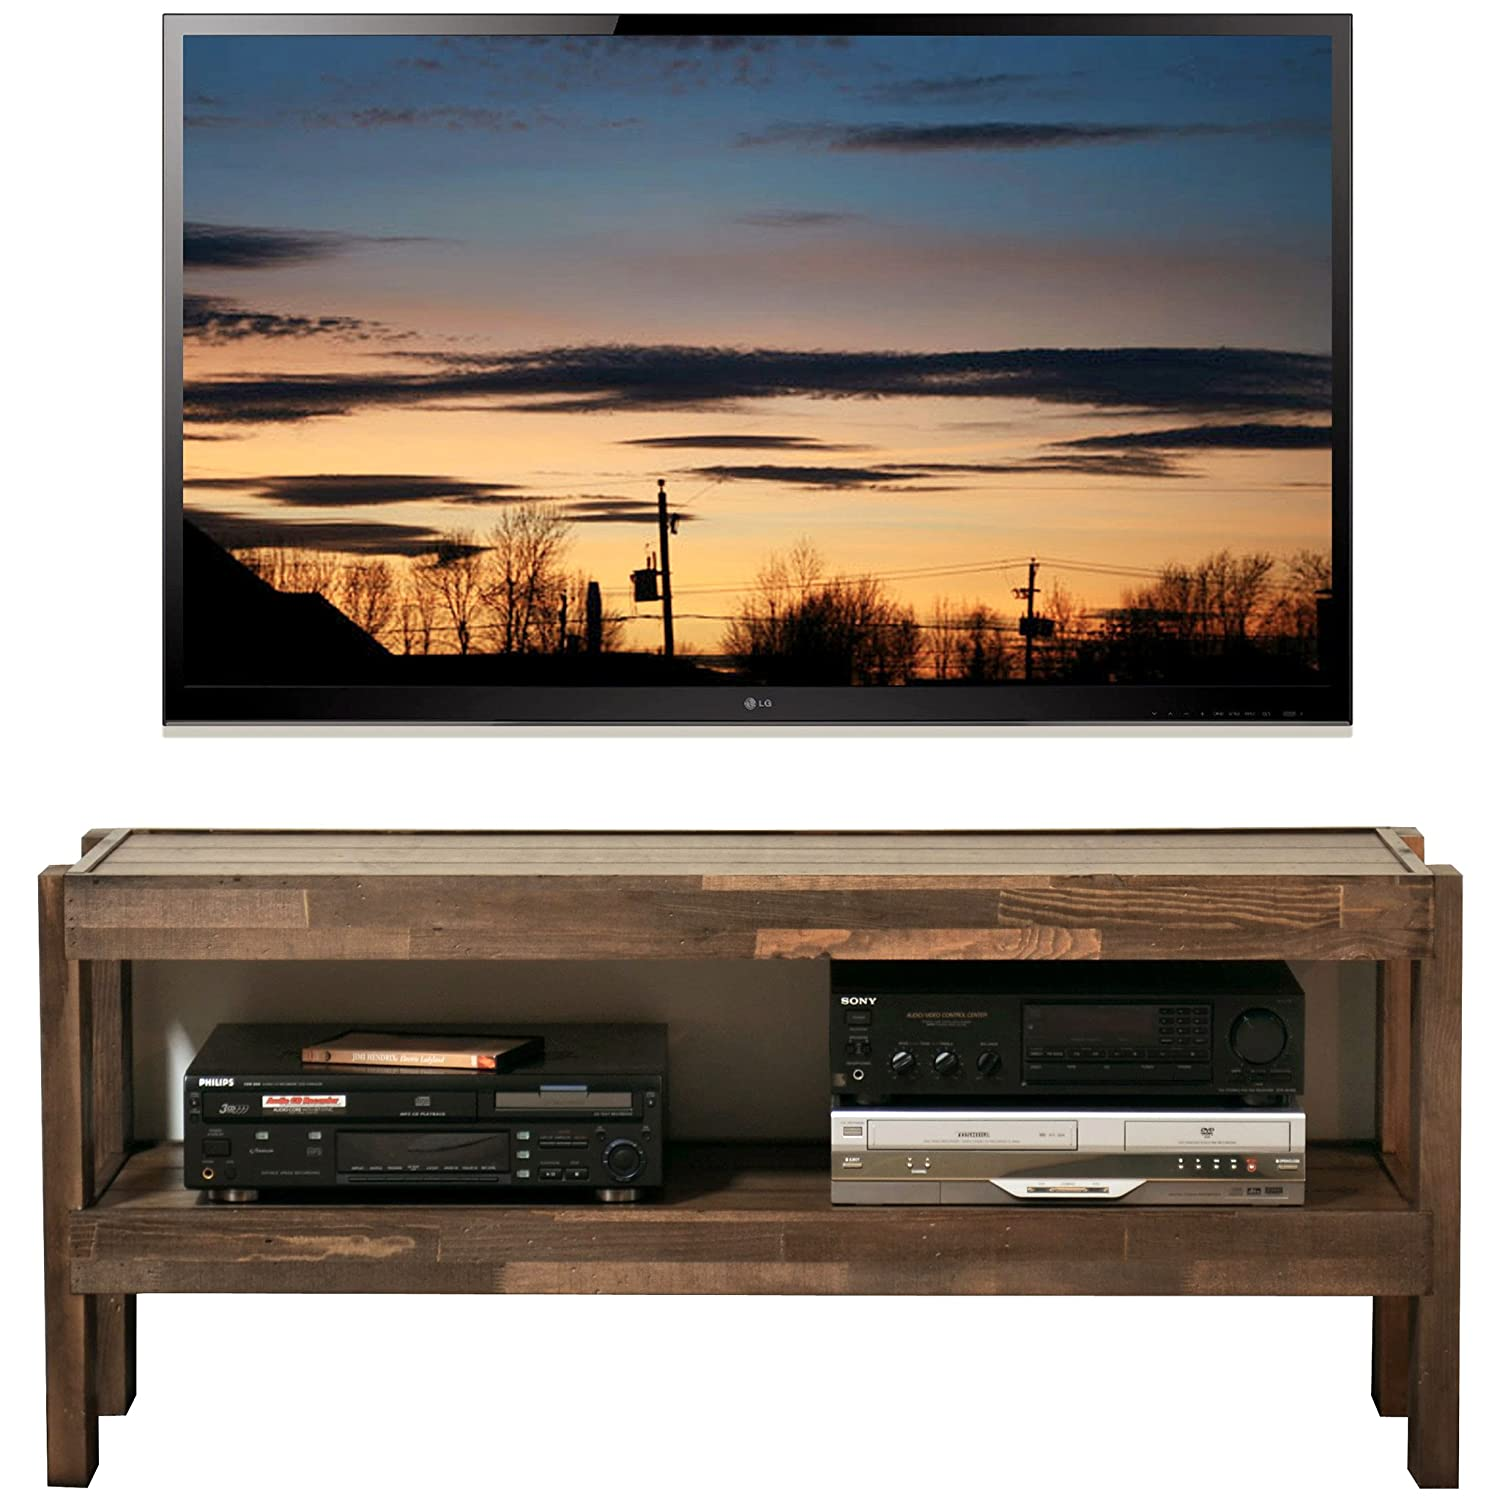 Rustic Reclaimed Barn Wood Style TV Stand – presEARTH Spice